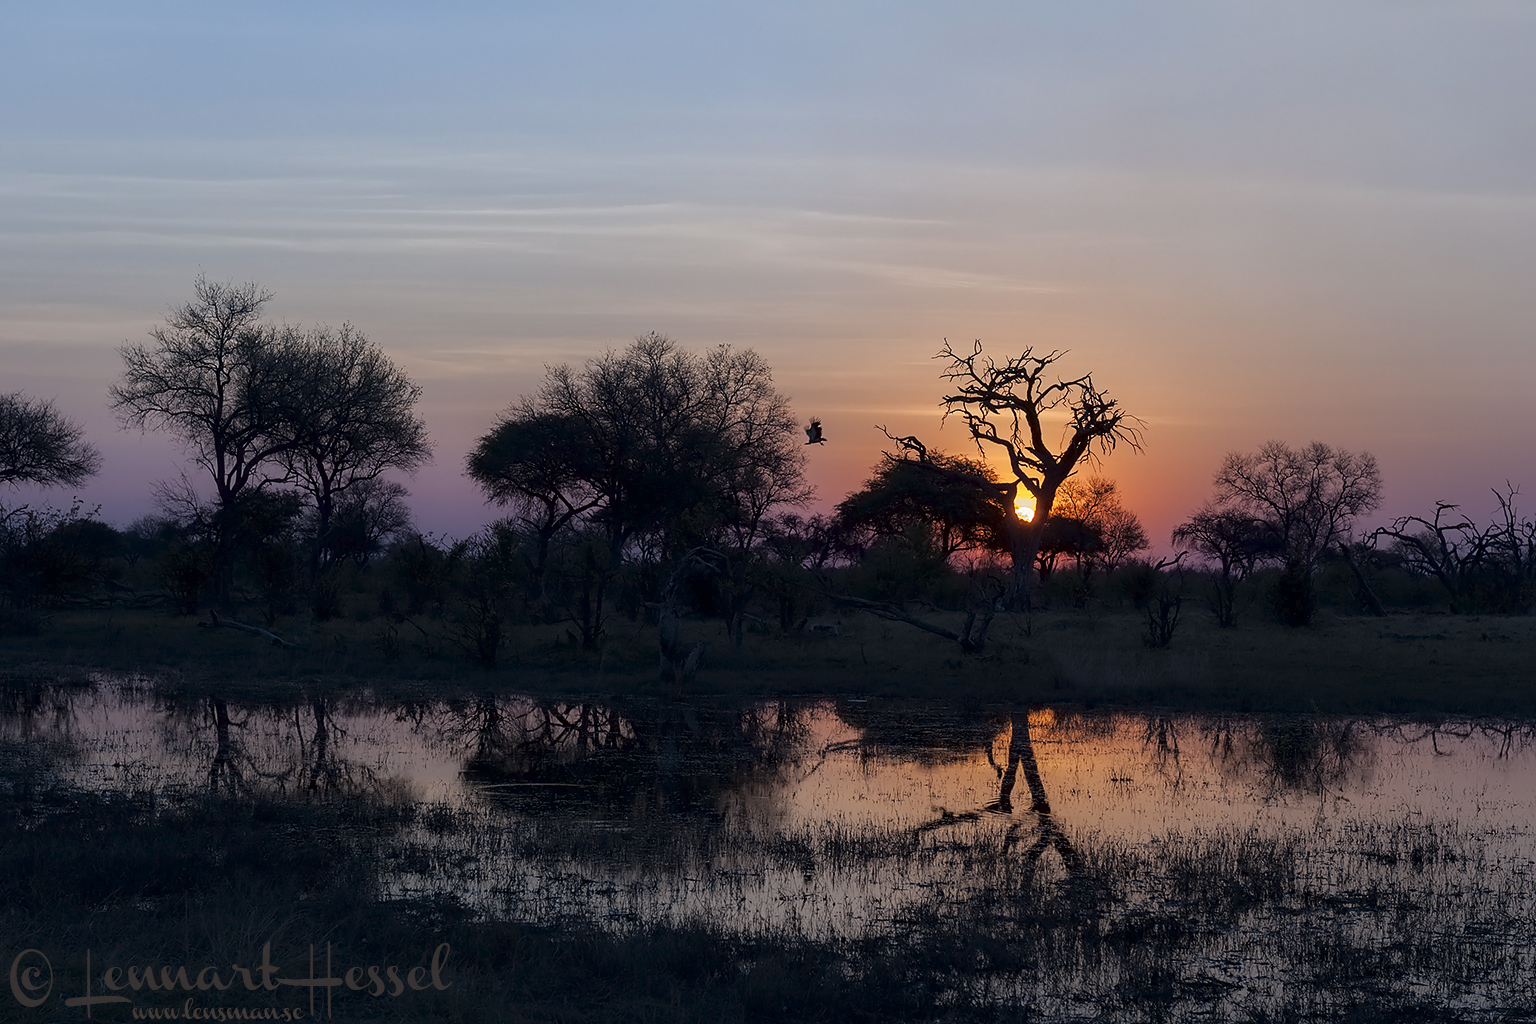 Sunset & White-backed Vulture in Khwai Community Area, Botswana